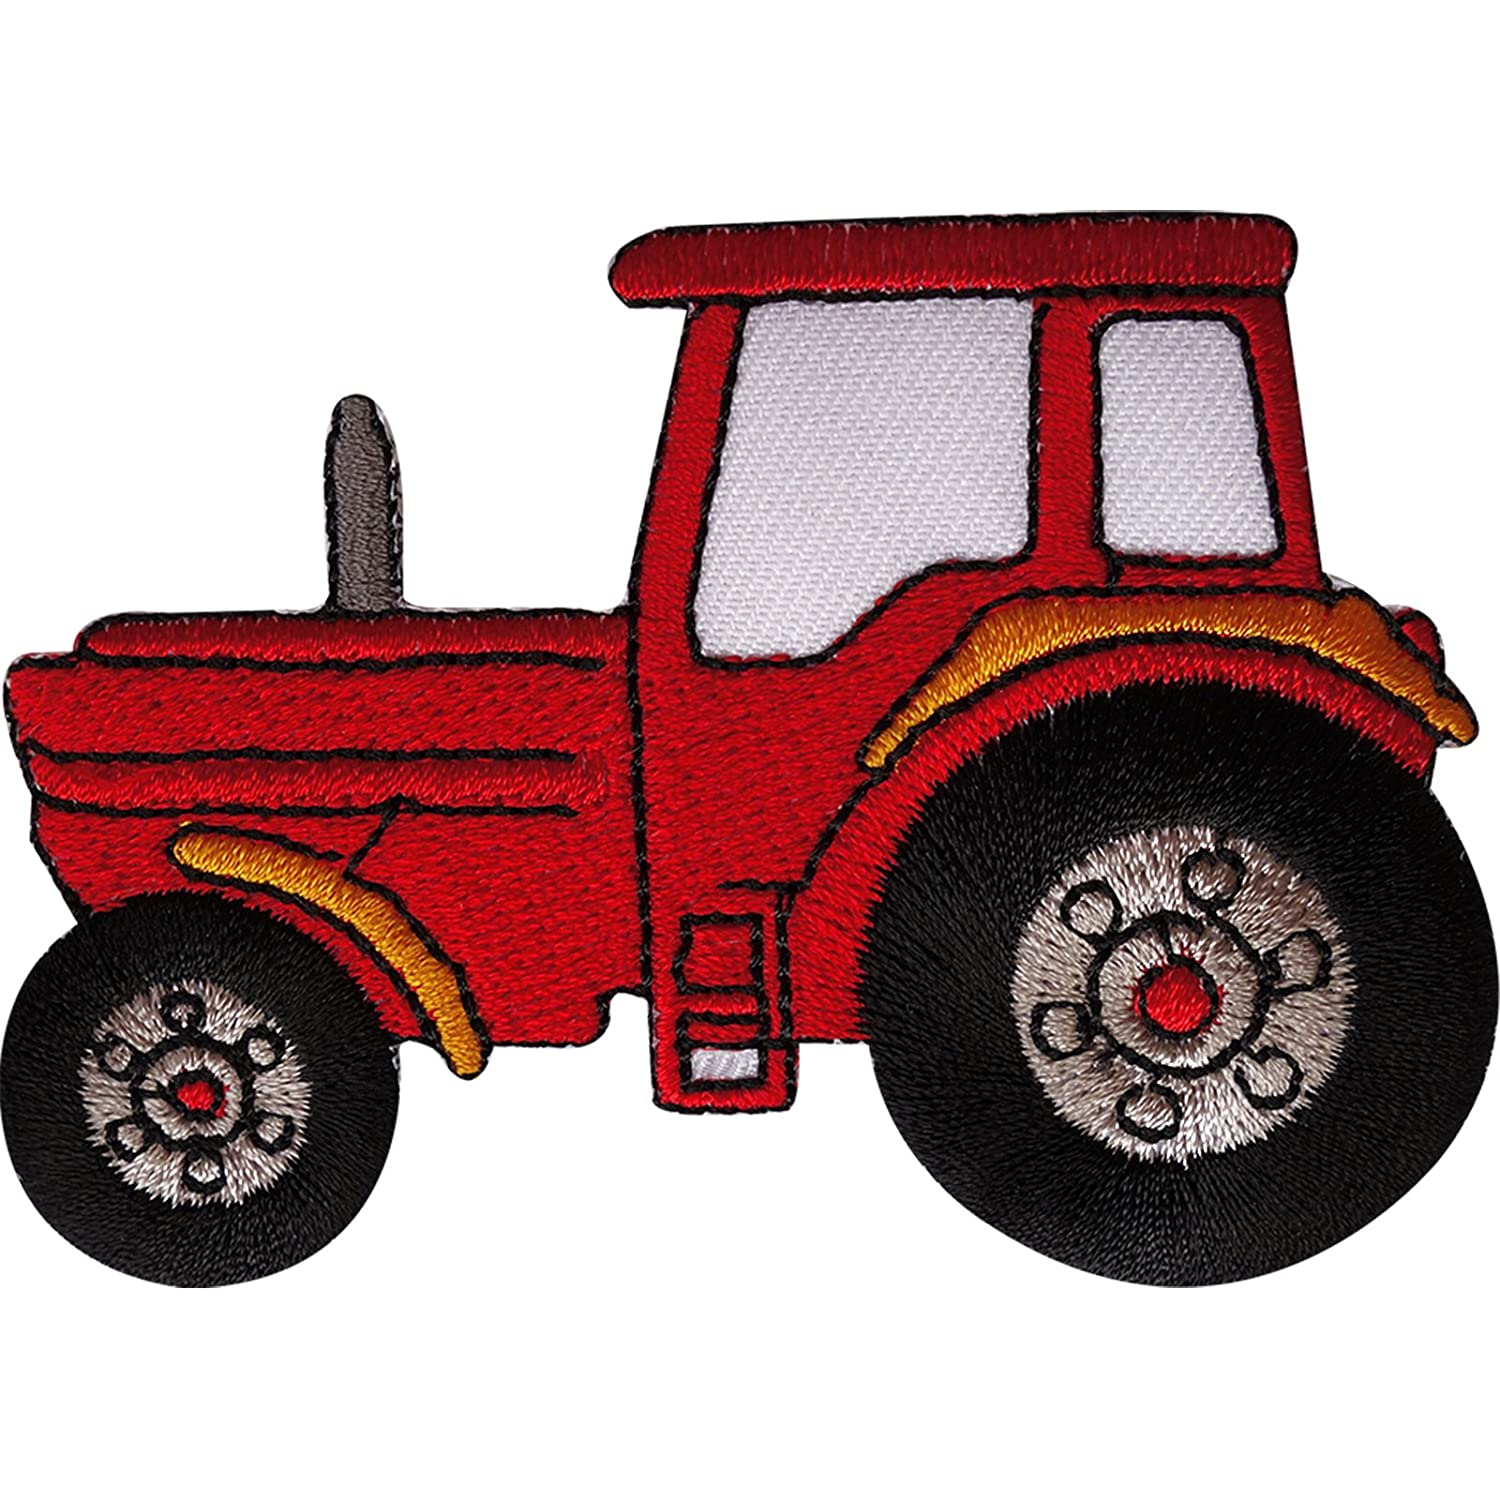 Tractor Patch Embroidered Badge Iron Sew On T Shirt Jeans Embroidery Applique